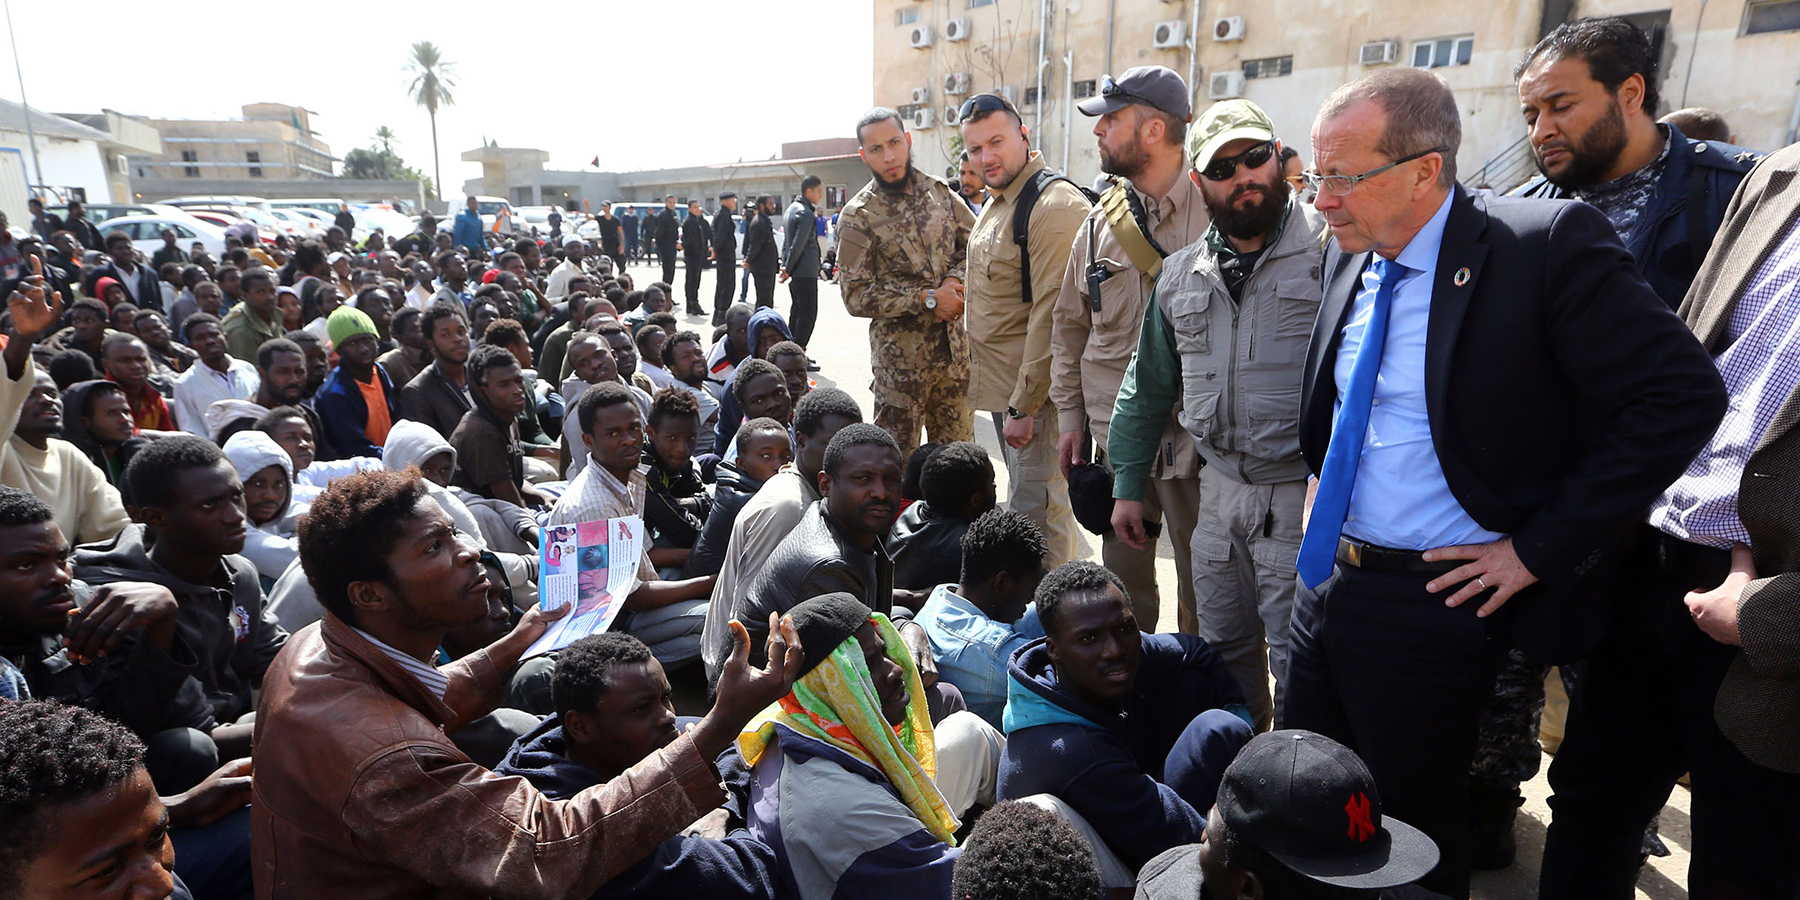 Martin Kobler, then the U.N. envoy to Libya, talks to migrants during a visit at a detention center in Tripoli on Feb. 17, 2017.